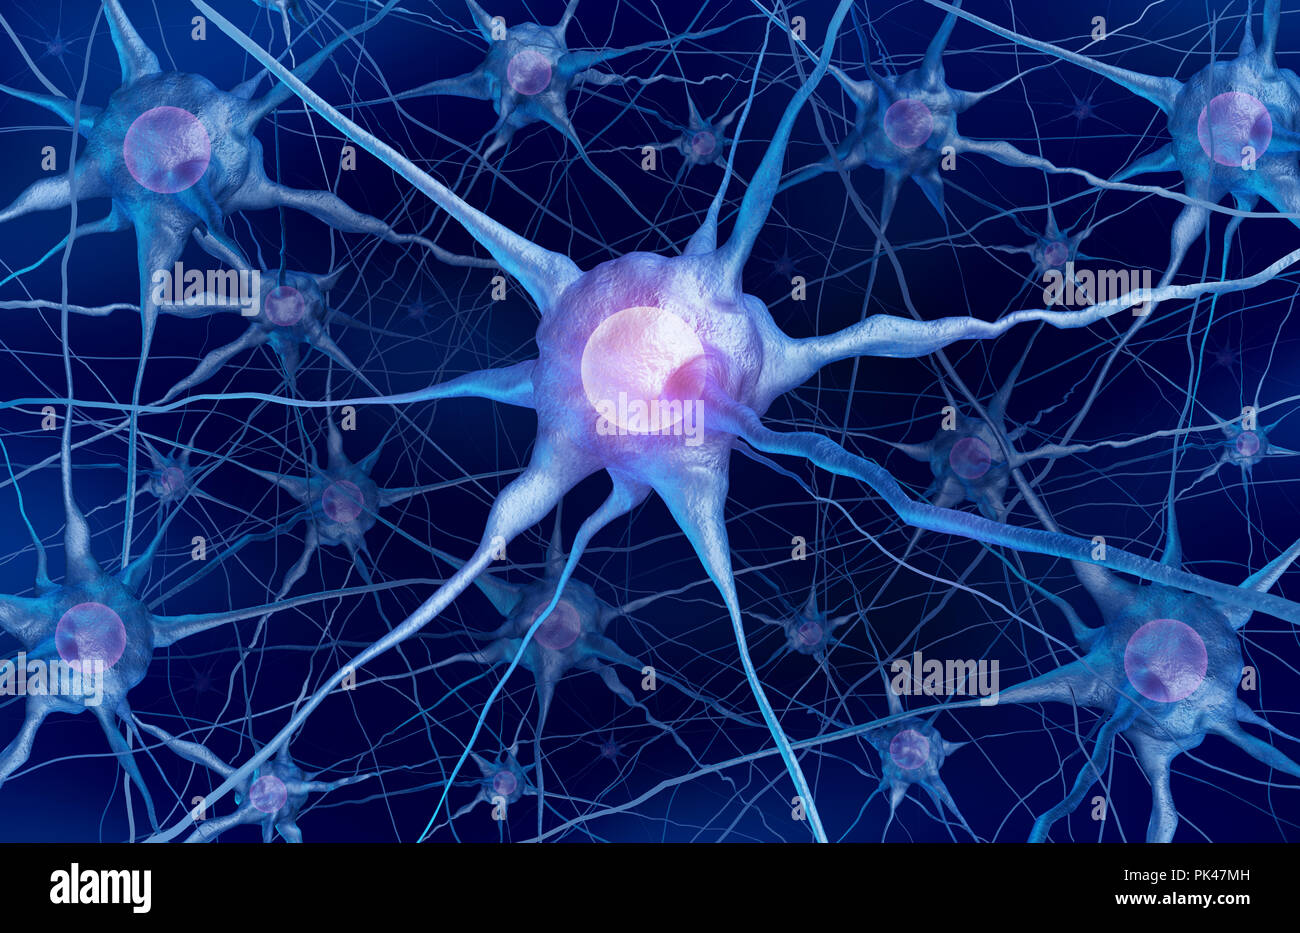 Neuron scientific concept and neurology cell anatomy as a mental health or brain function symbol as a 3D rendering. - Stock Image